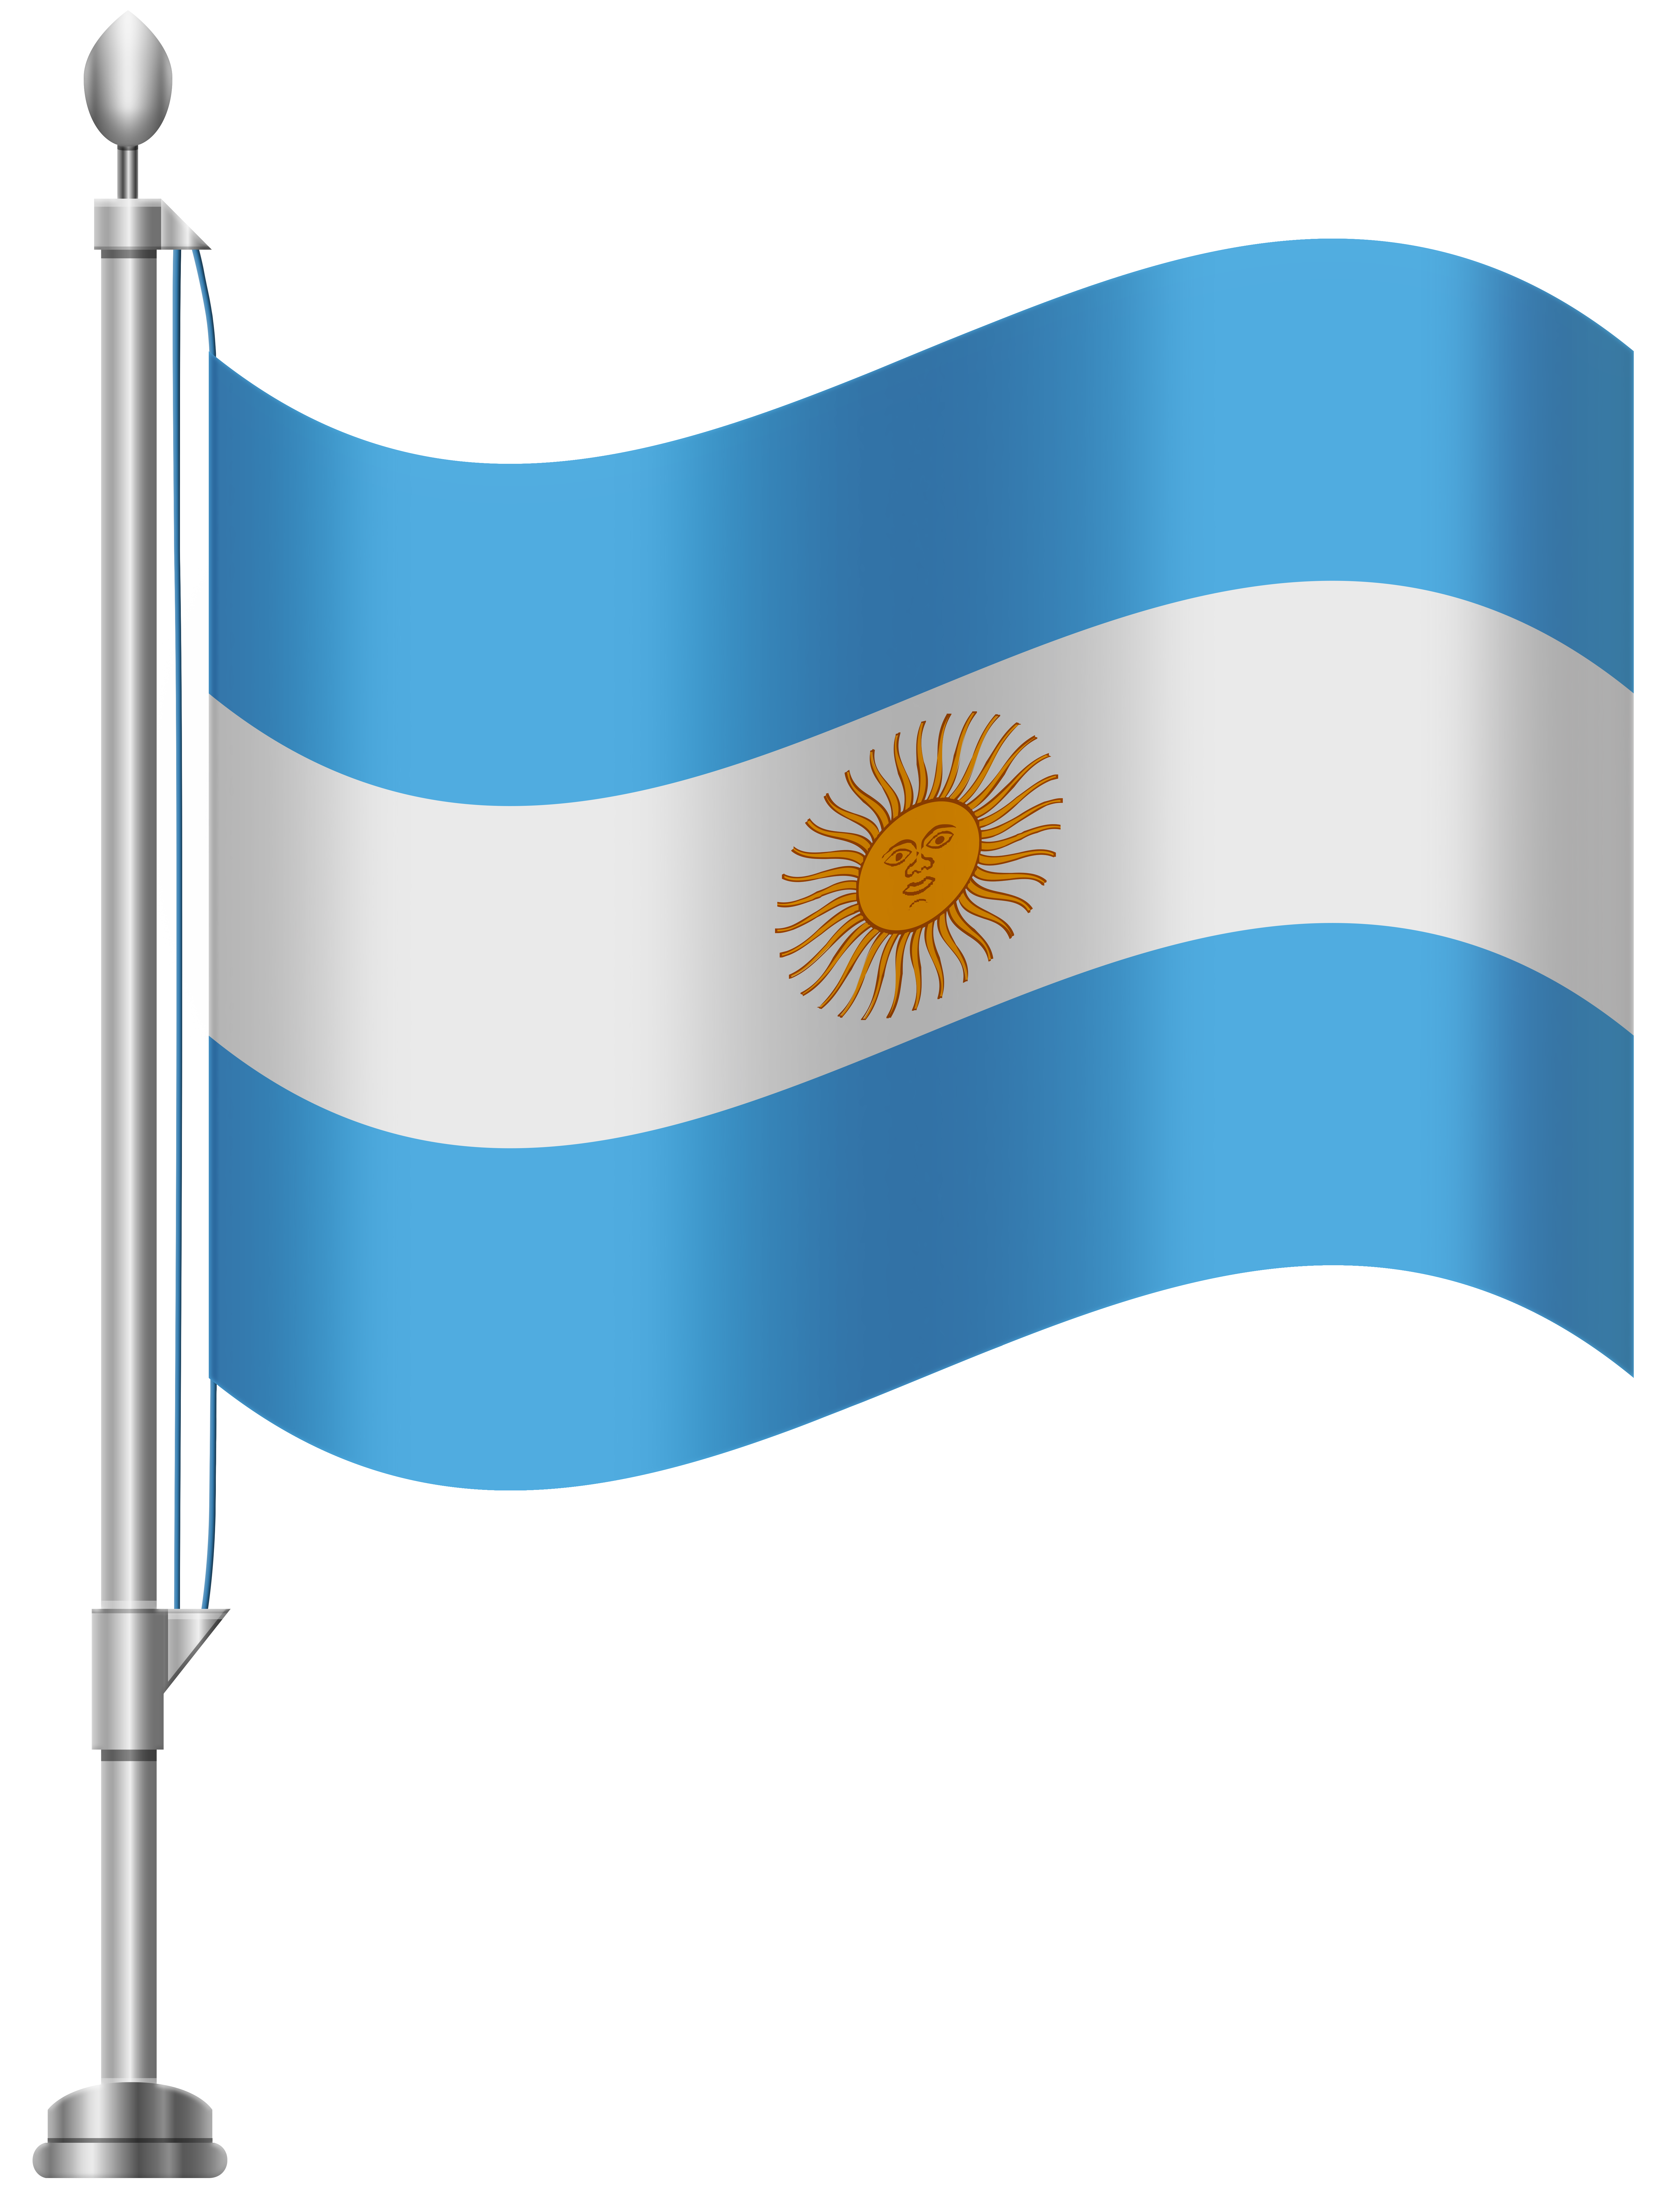 Argentina money clipart graphic royalty free download Argentina Flag PNG Clip Art - Best WEB Clipart graphic royalty free download